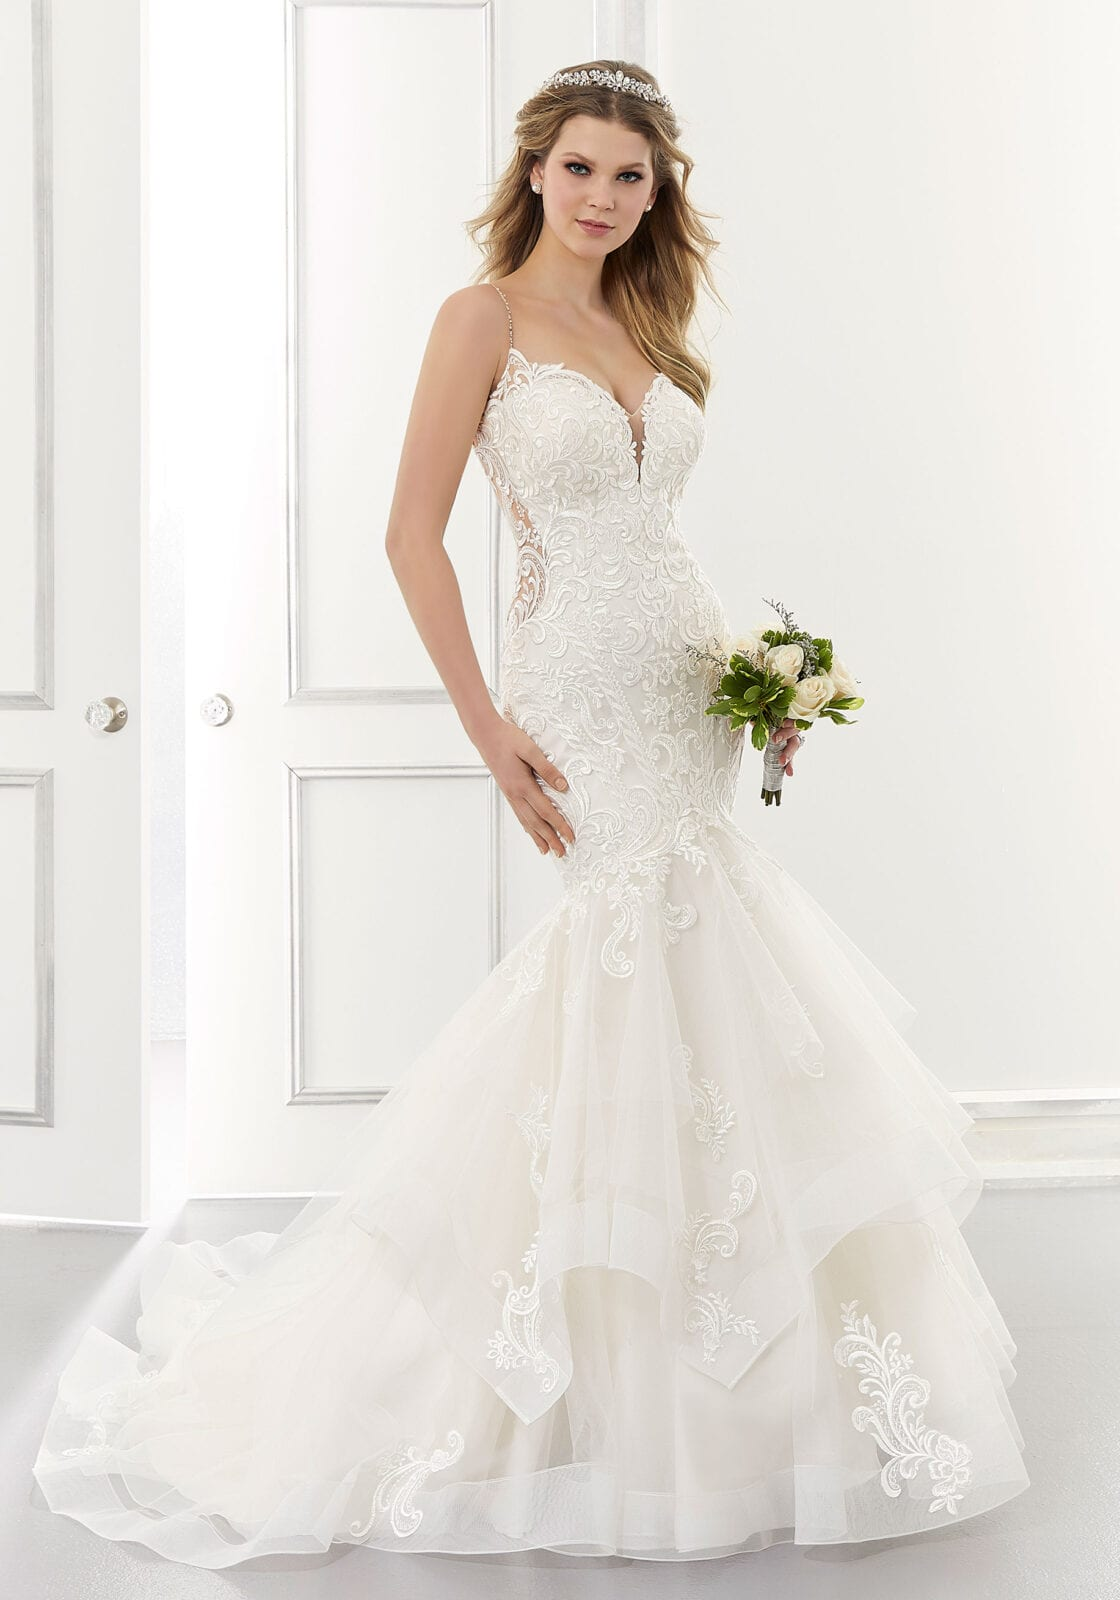 Wedding dresses Sacramento Diamond Bridal Gallery